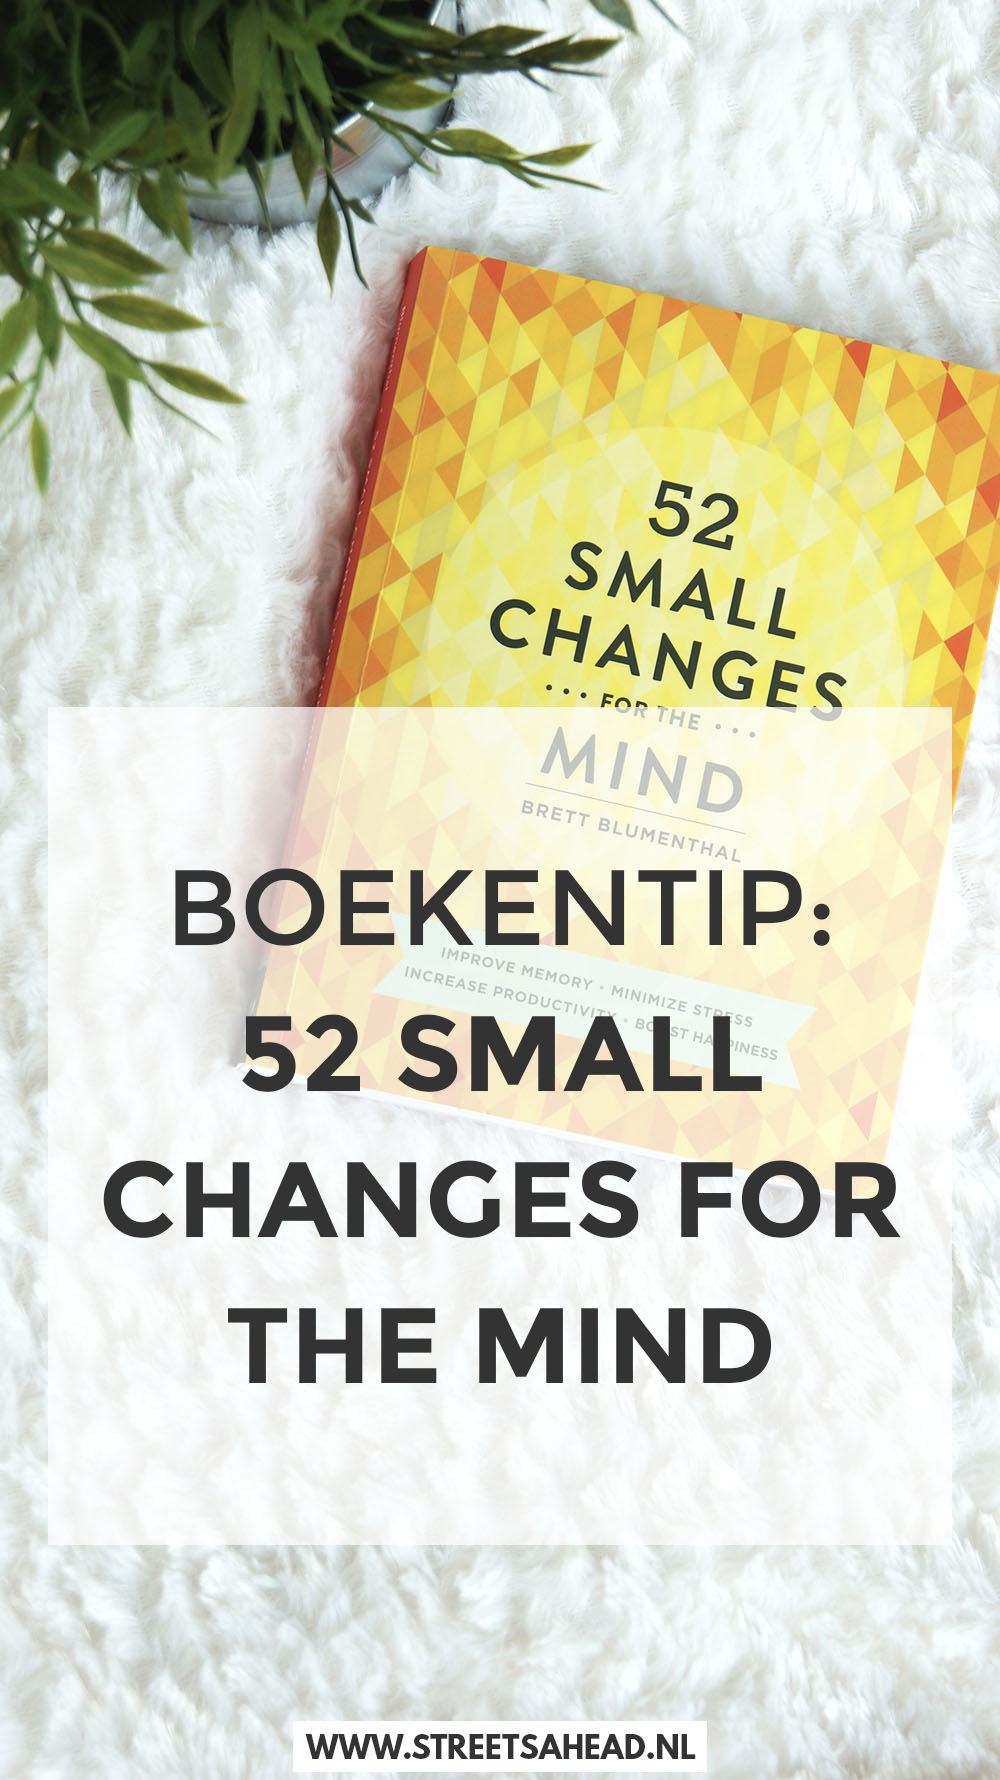 52smallchanges6